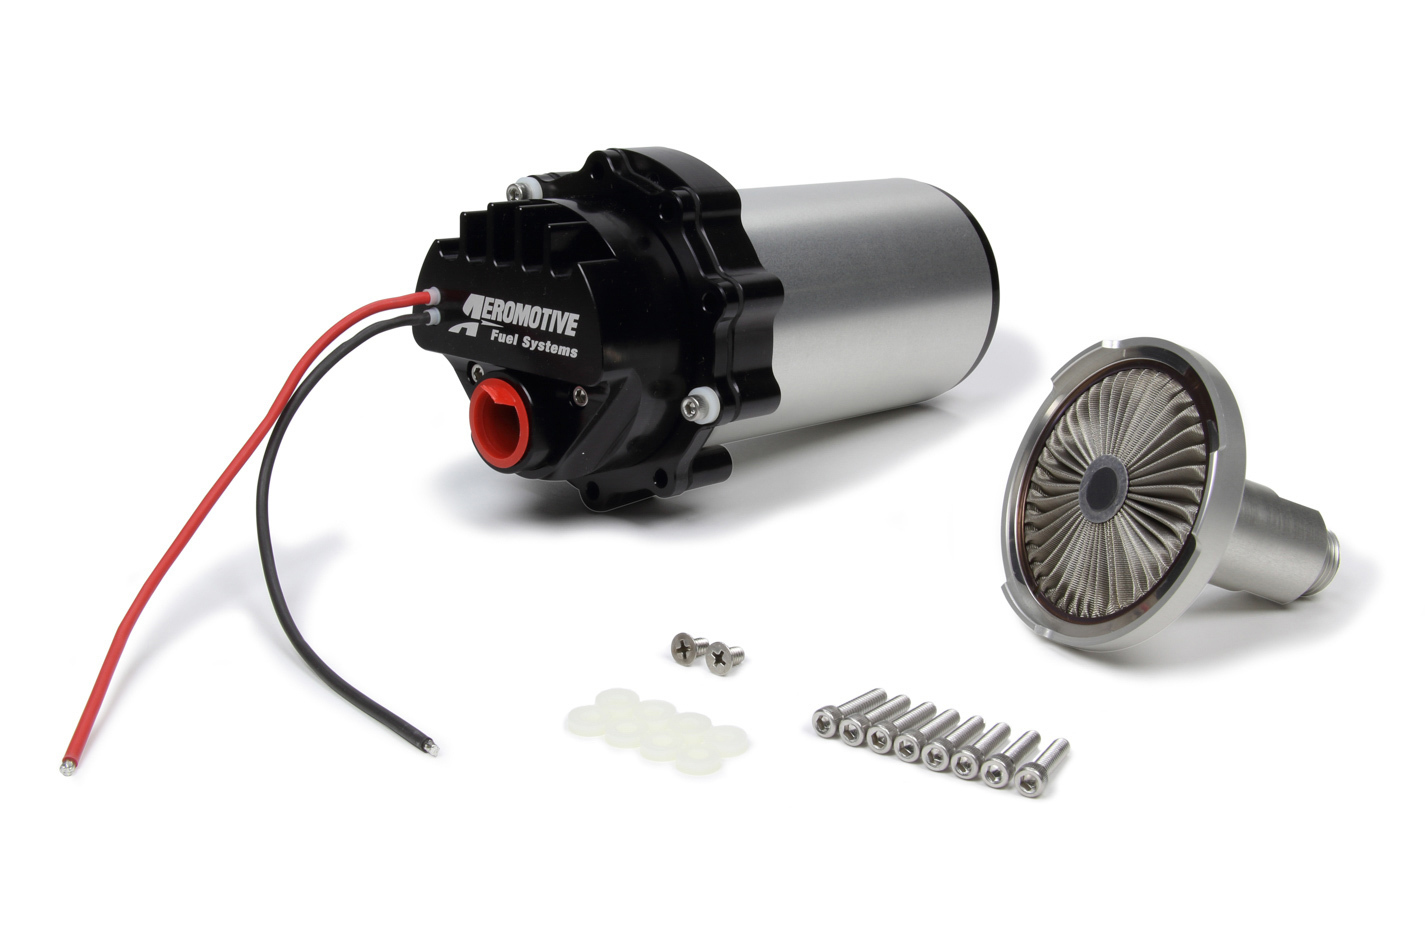 Aeromotive 18026 Fuel Pump, Pro Series 5.0, Electric, In-Tank, 144 gph at 45 psi, 10 AN Outlet, E85 / Gas, Kit